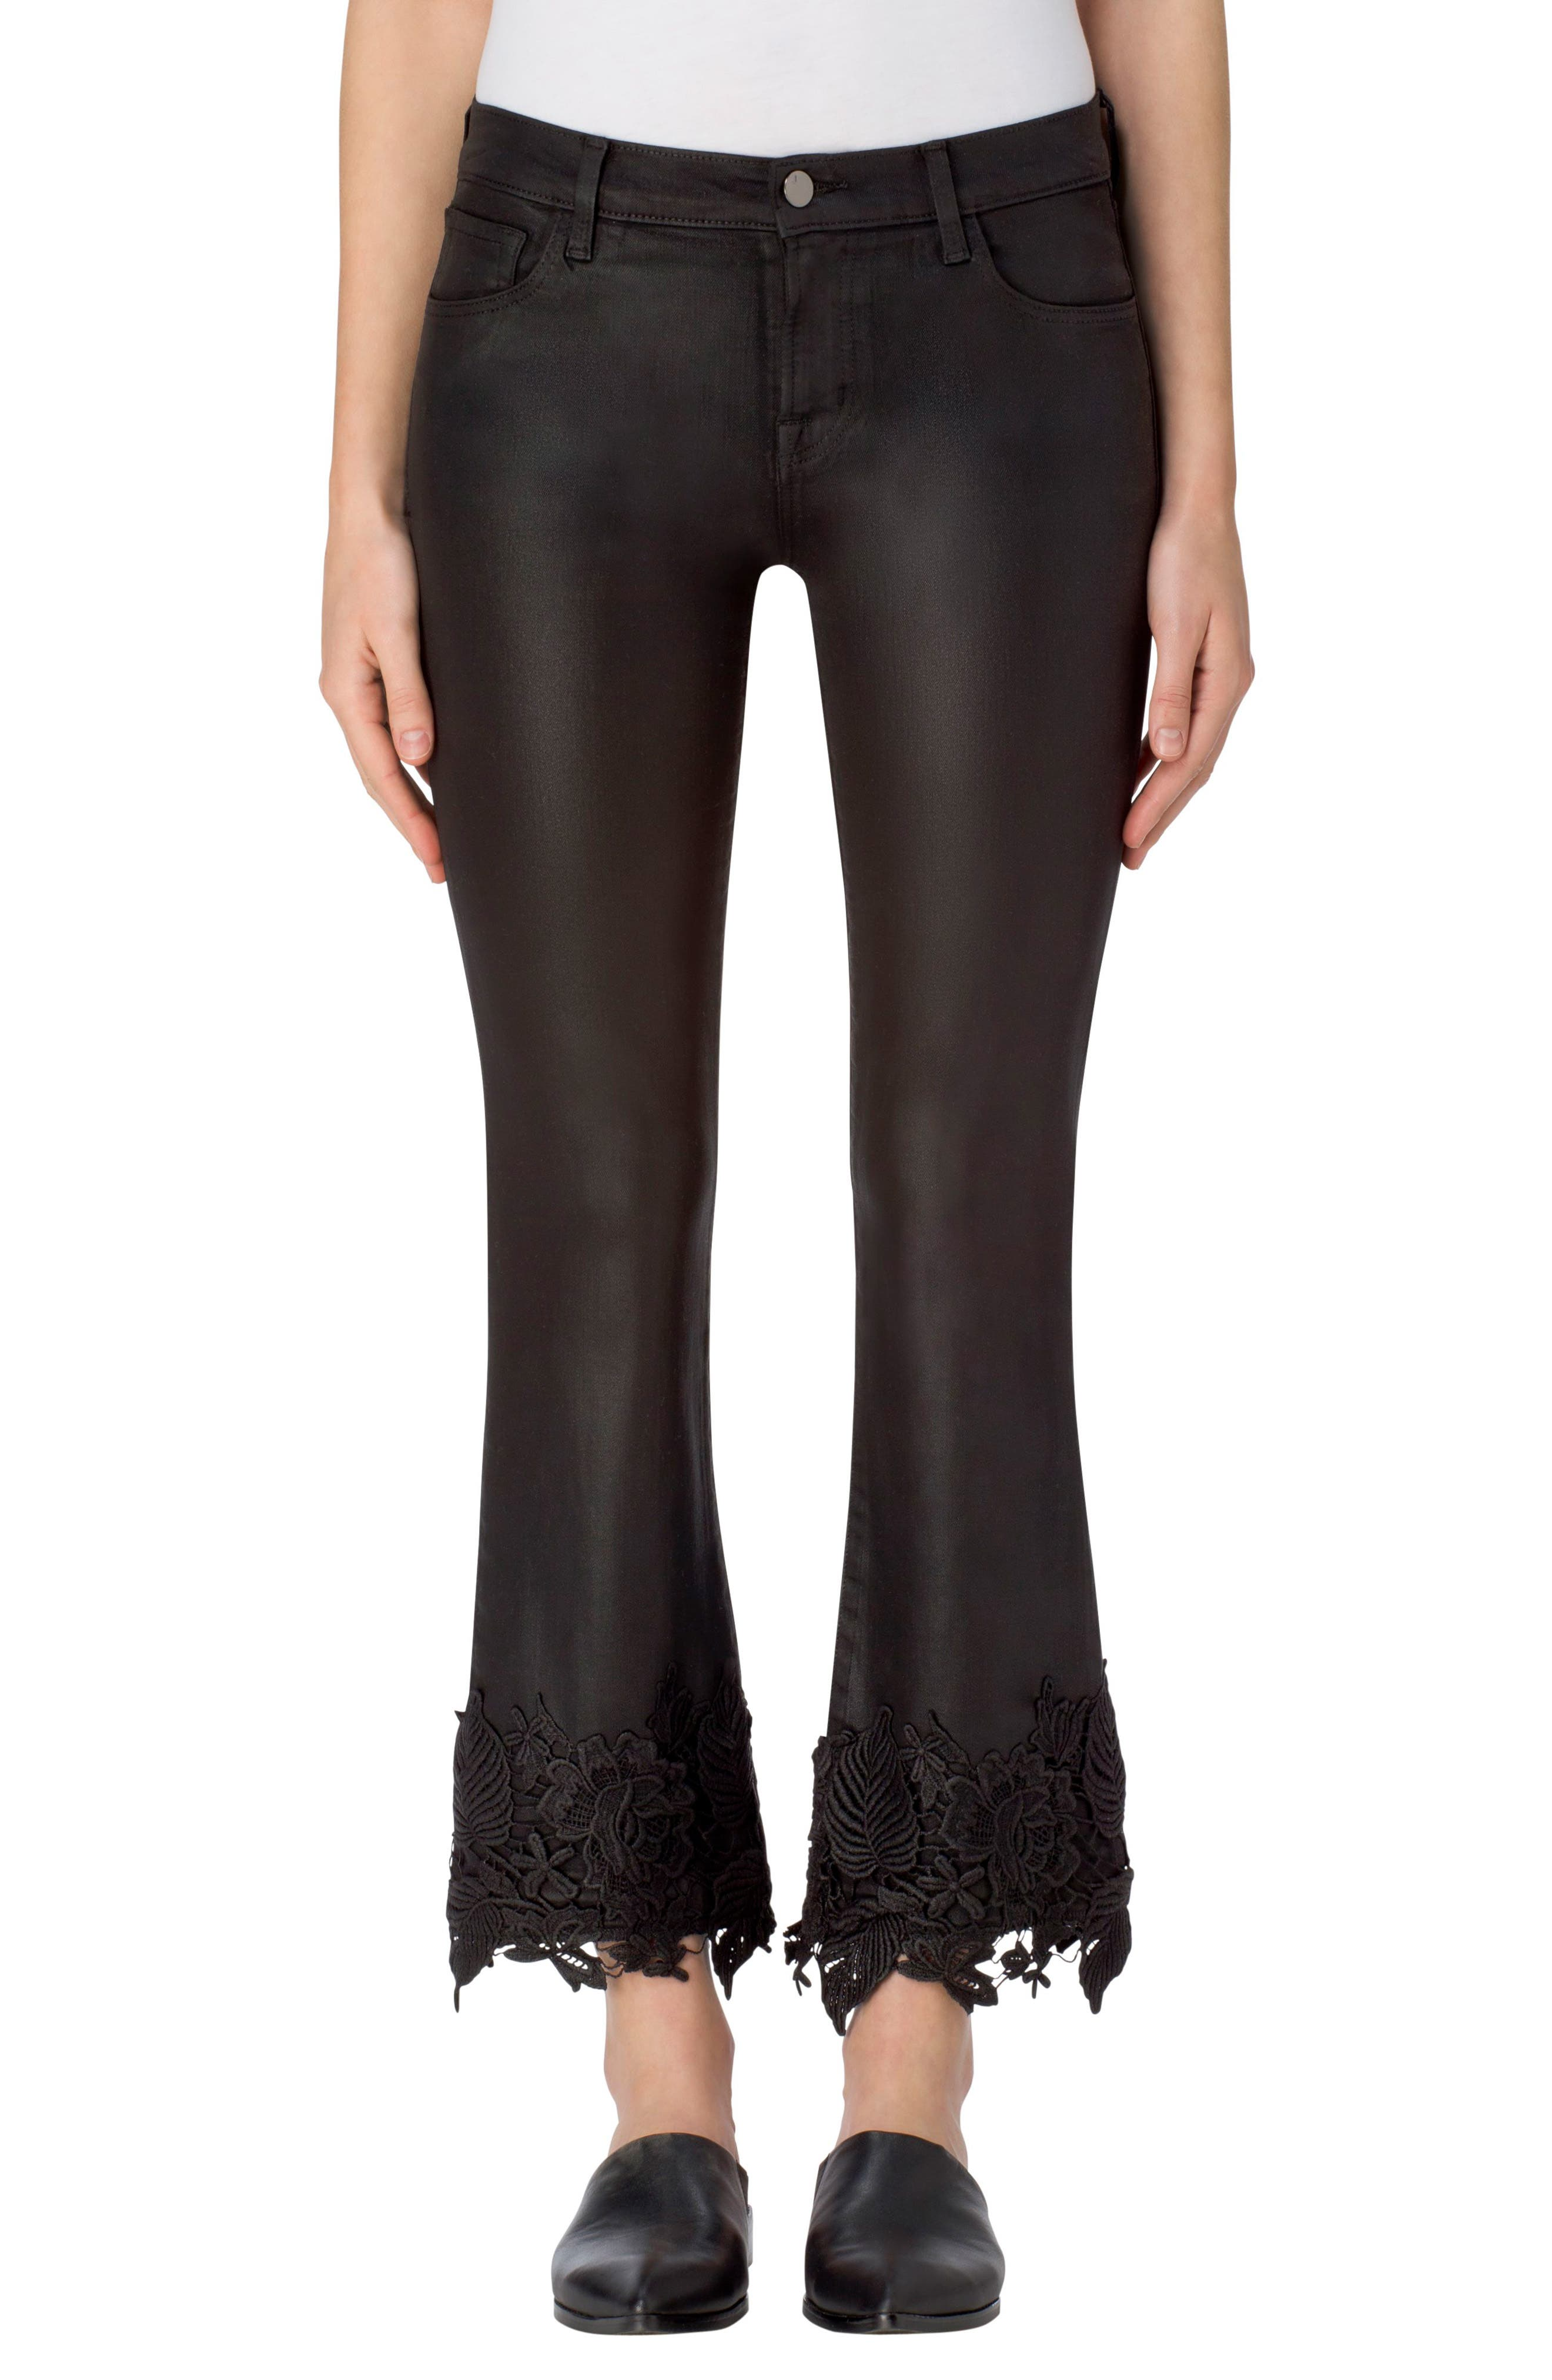 Main Image - J Brand Selena Crop Bootcut Jeans (Coated Black Lace)